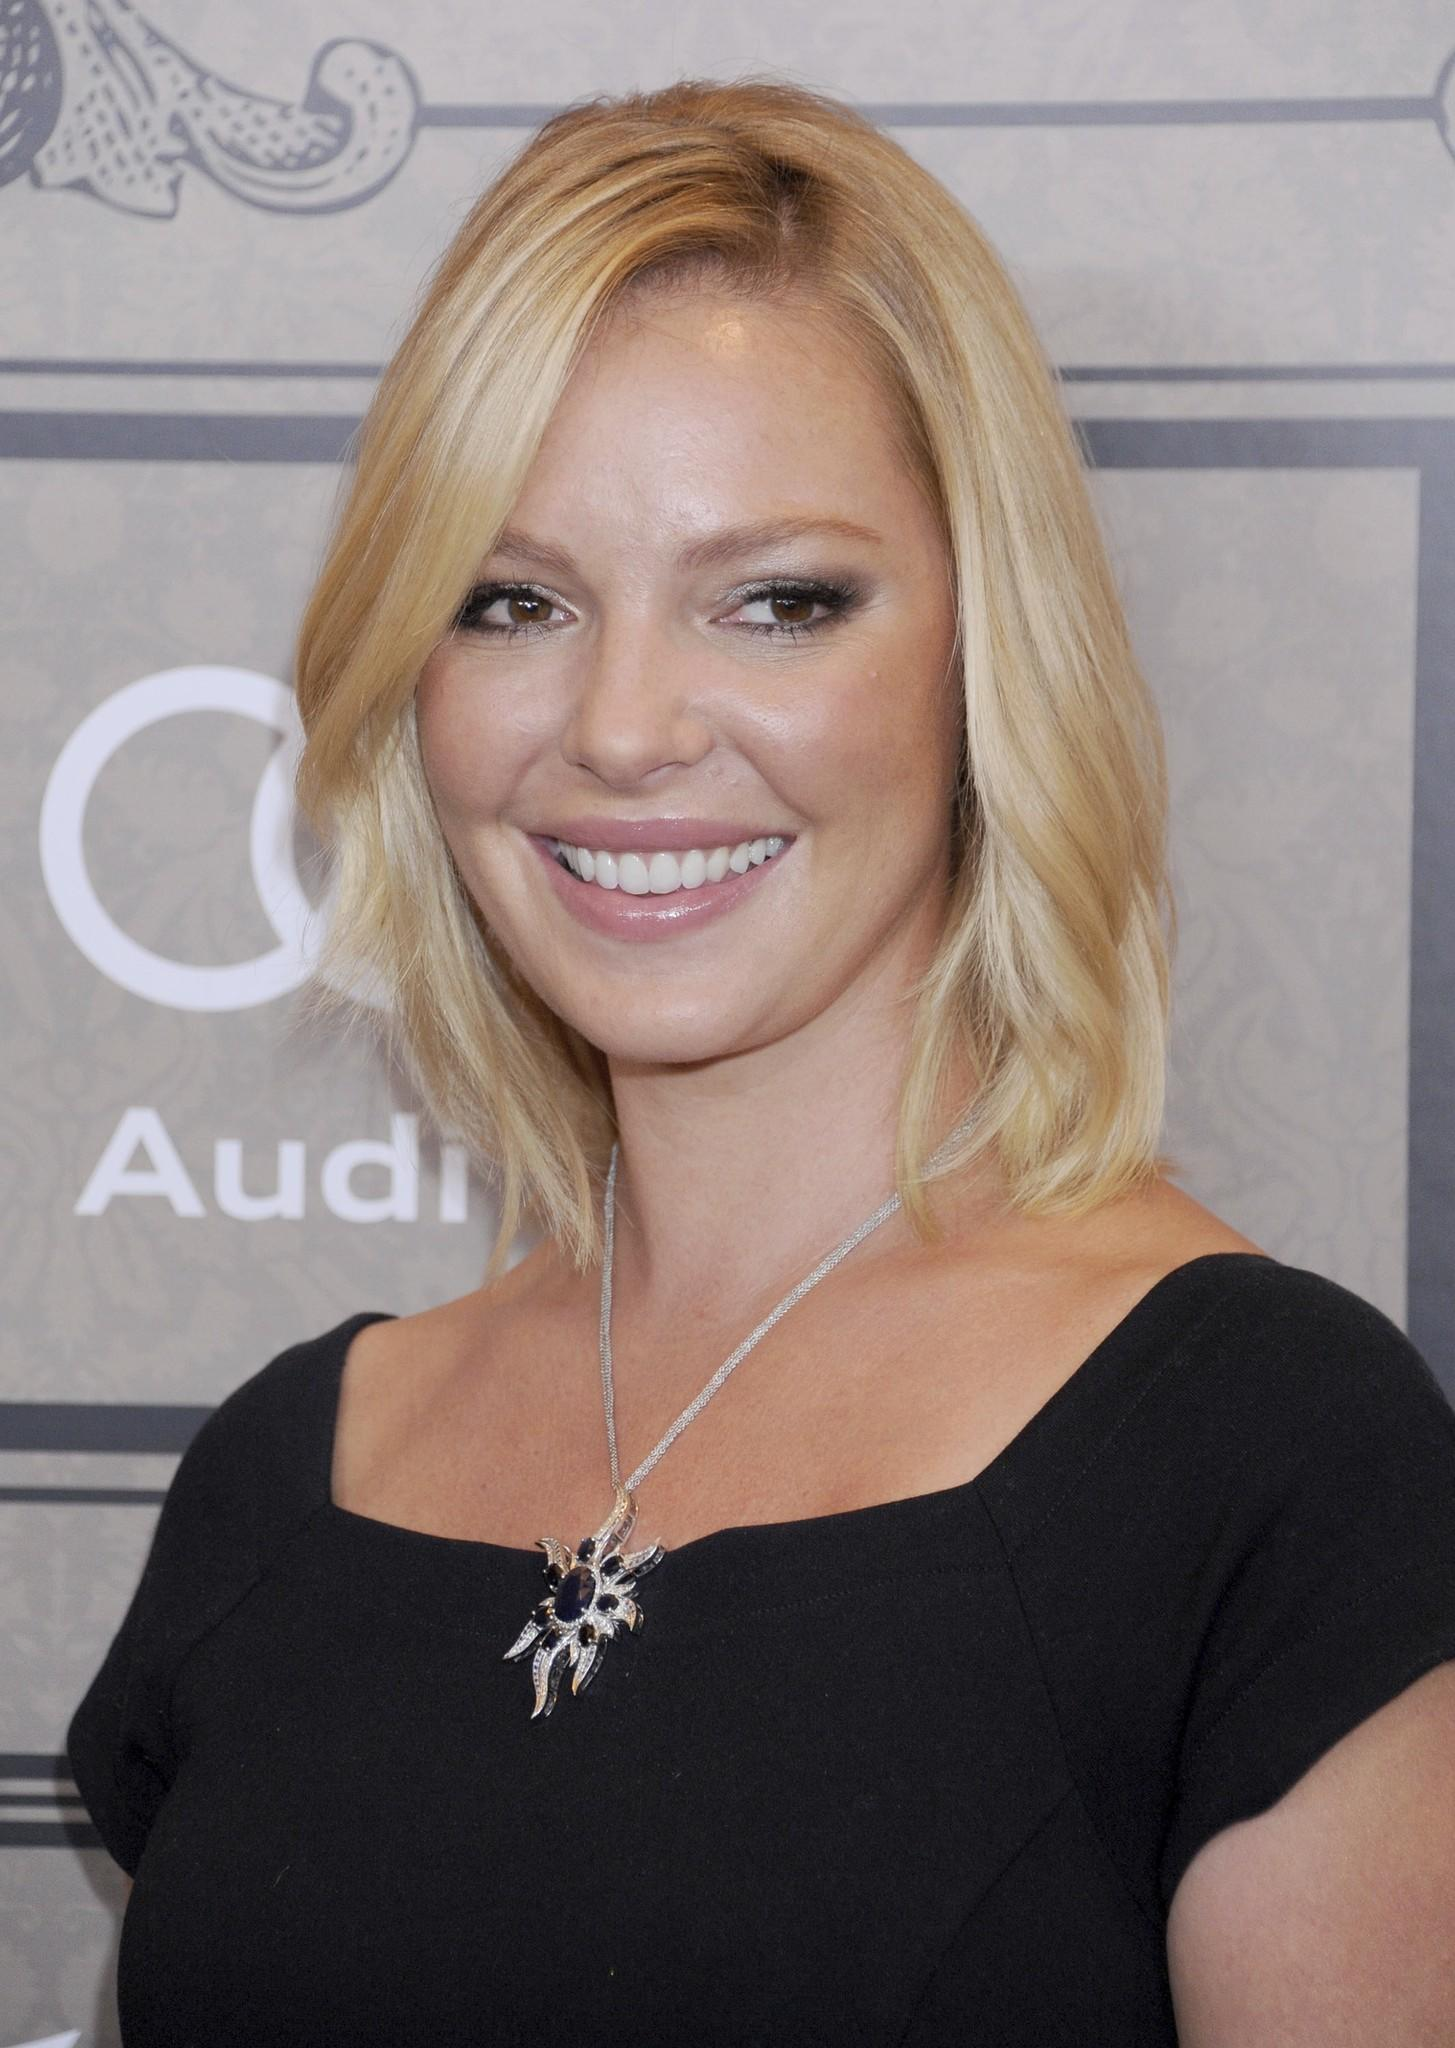 Actress Katherine Heigl arrives at Variety's 4th Annual Power Of Women event at the Beverly Wilshire Four Seasons Hotel on October 5, 2012 in Beverly Hills, California.